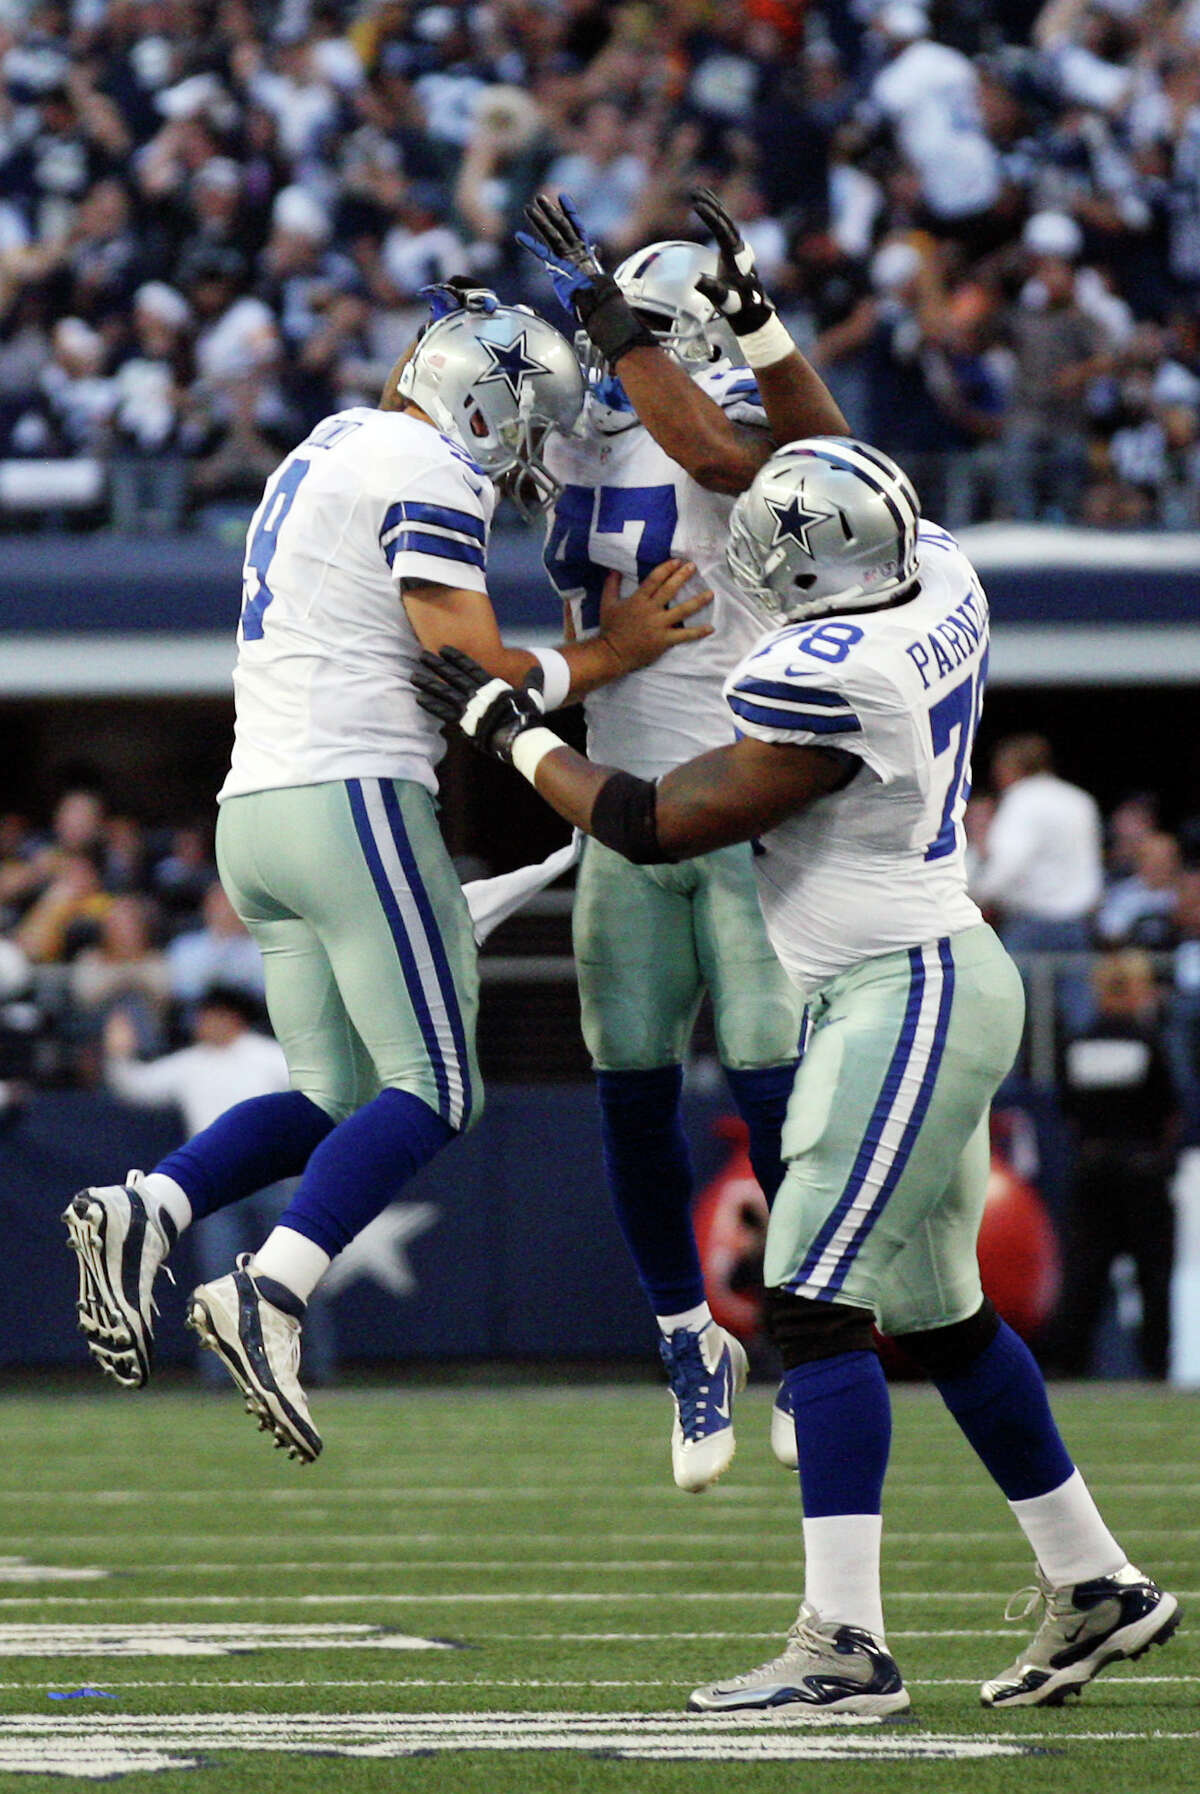 Dallas Cowboys' quarterback Tony Romo, left, celebrates with Lawrence Vickers, (47) and Jermey Parnell, (78), after a touchdown pass to Jason Witten in the second quarter agaisnt the Pittsburgh Steelers at Cowboys Stadium in Arlington, Texas, Sunday, Dec. 16, 2012.